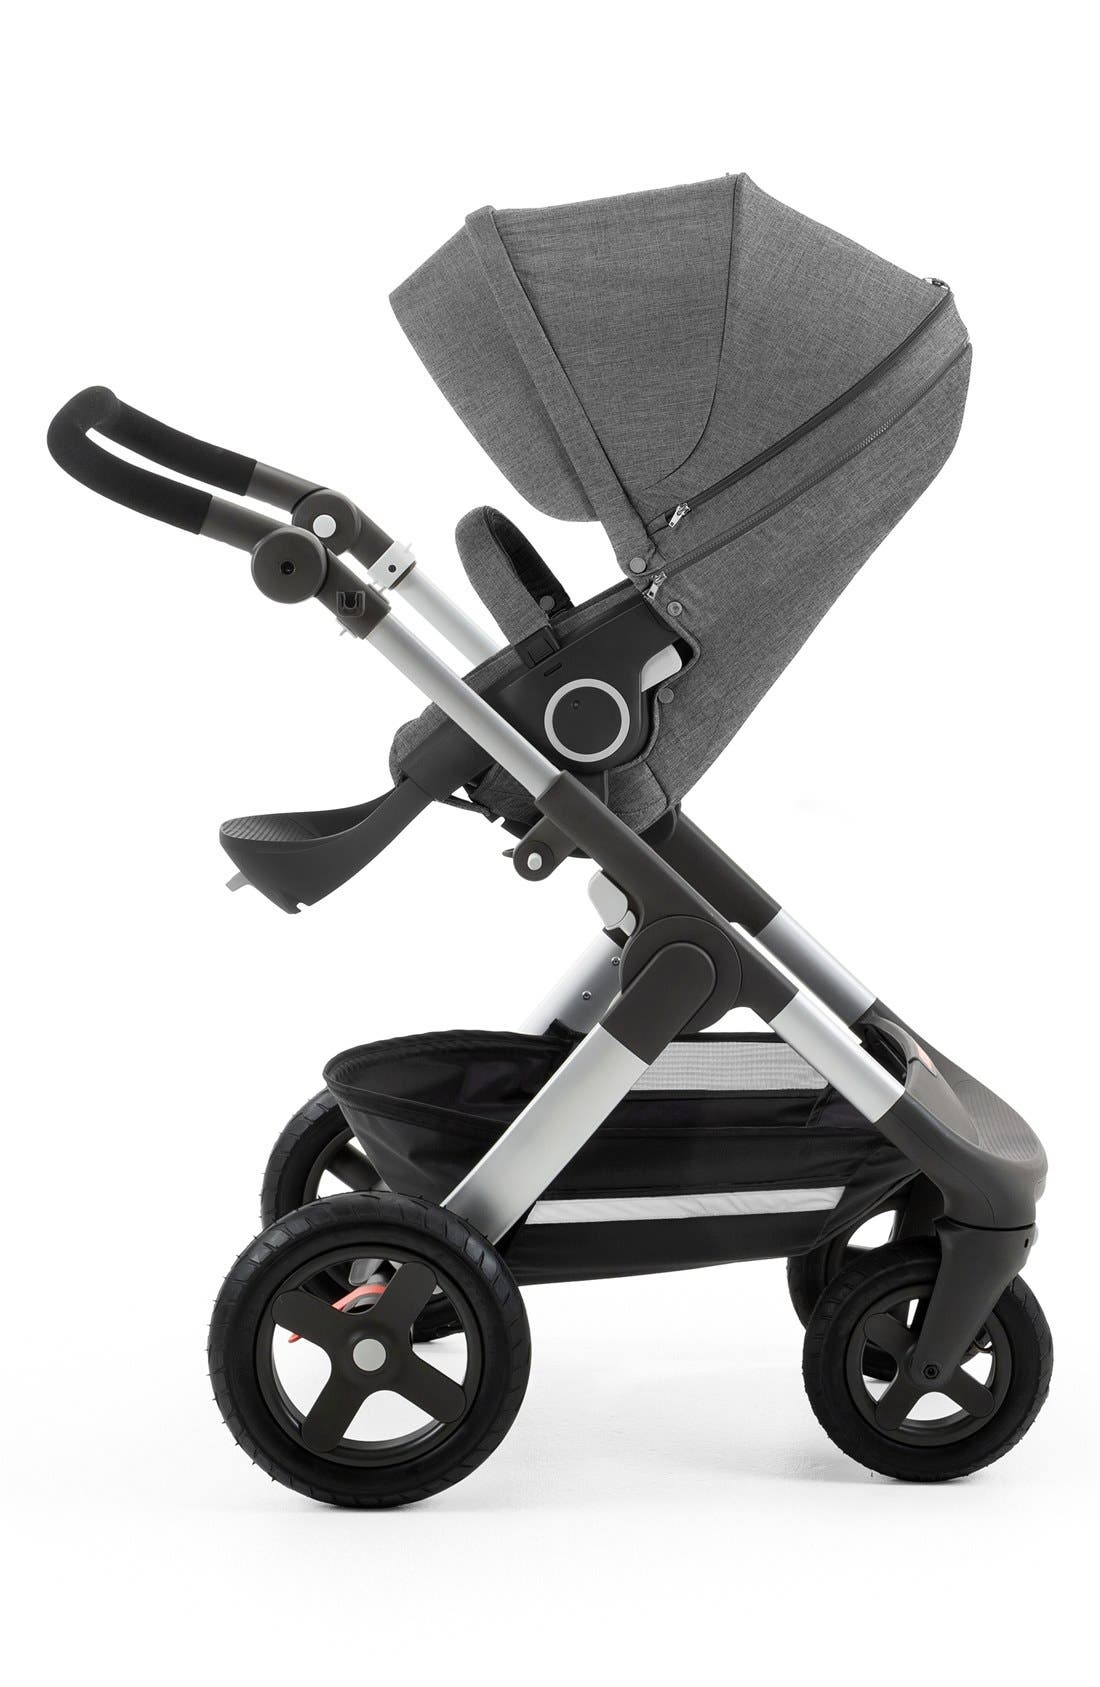 STOKKE 'Trailz™' All Terrain Stroller